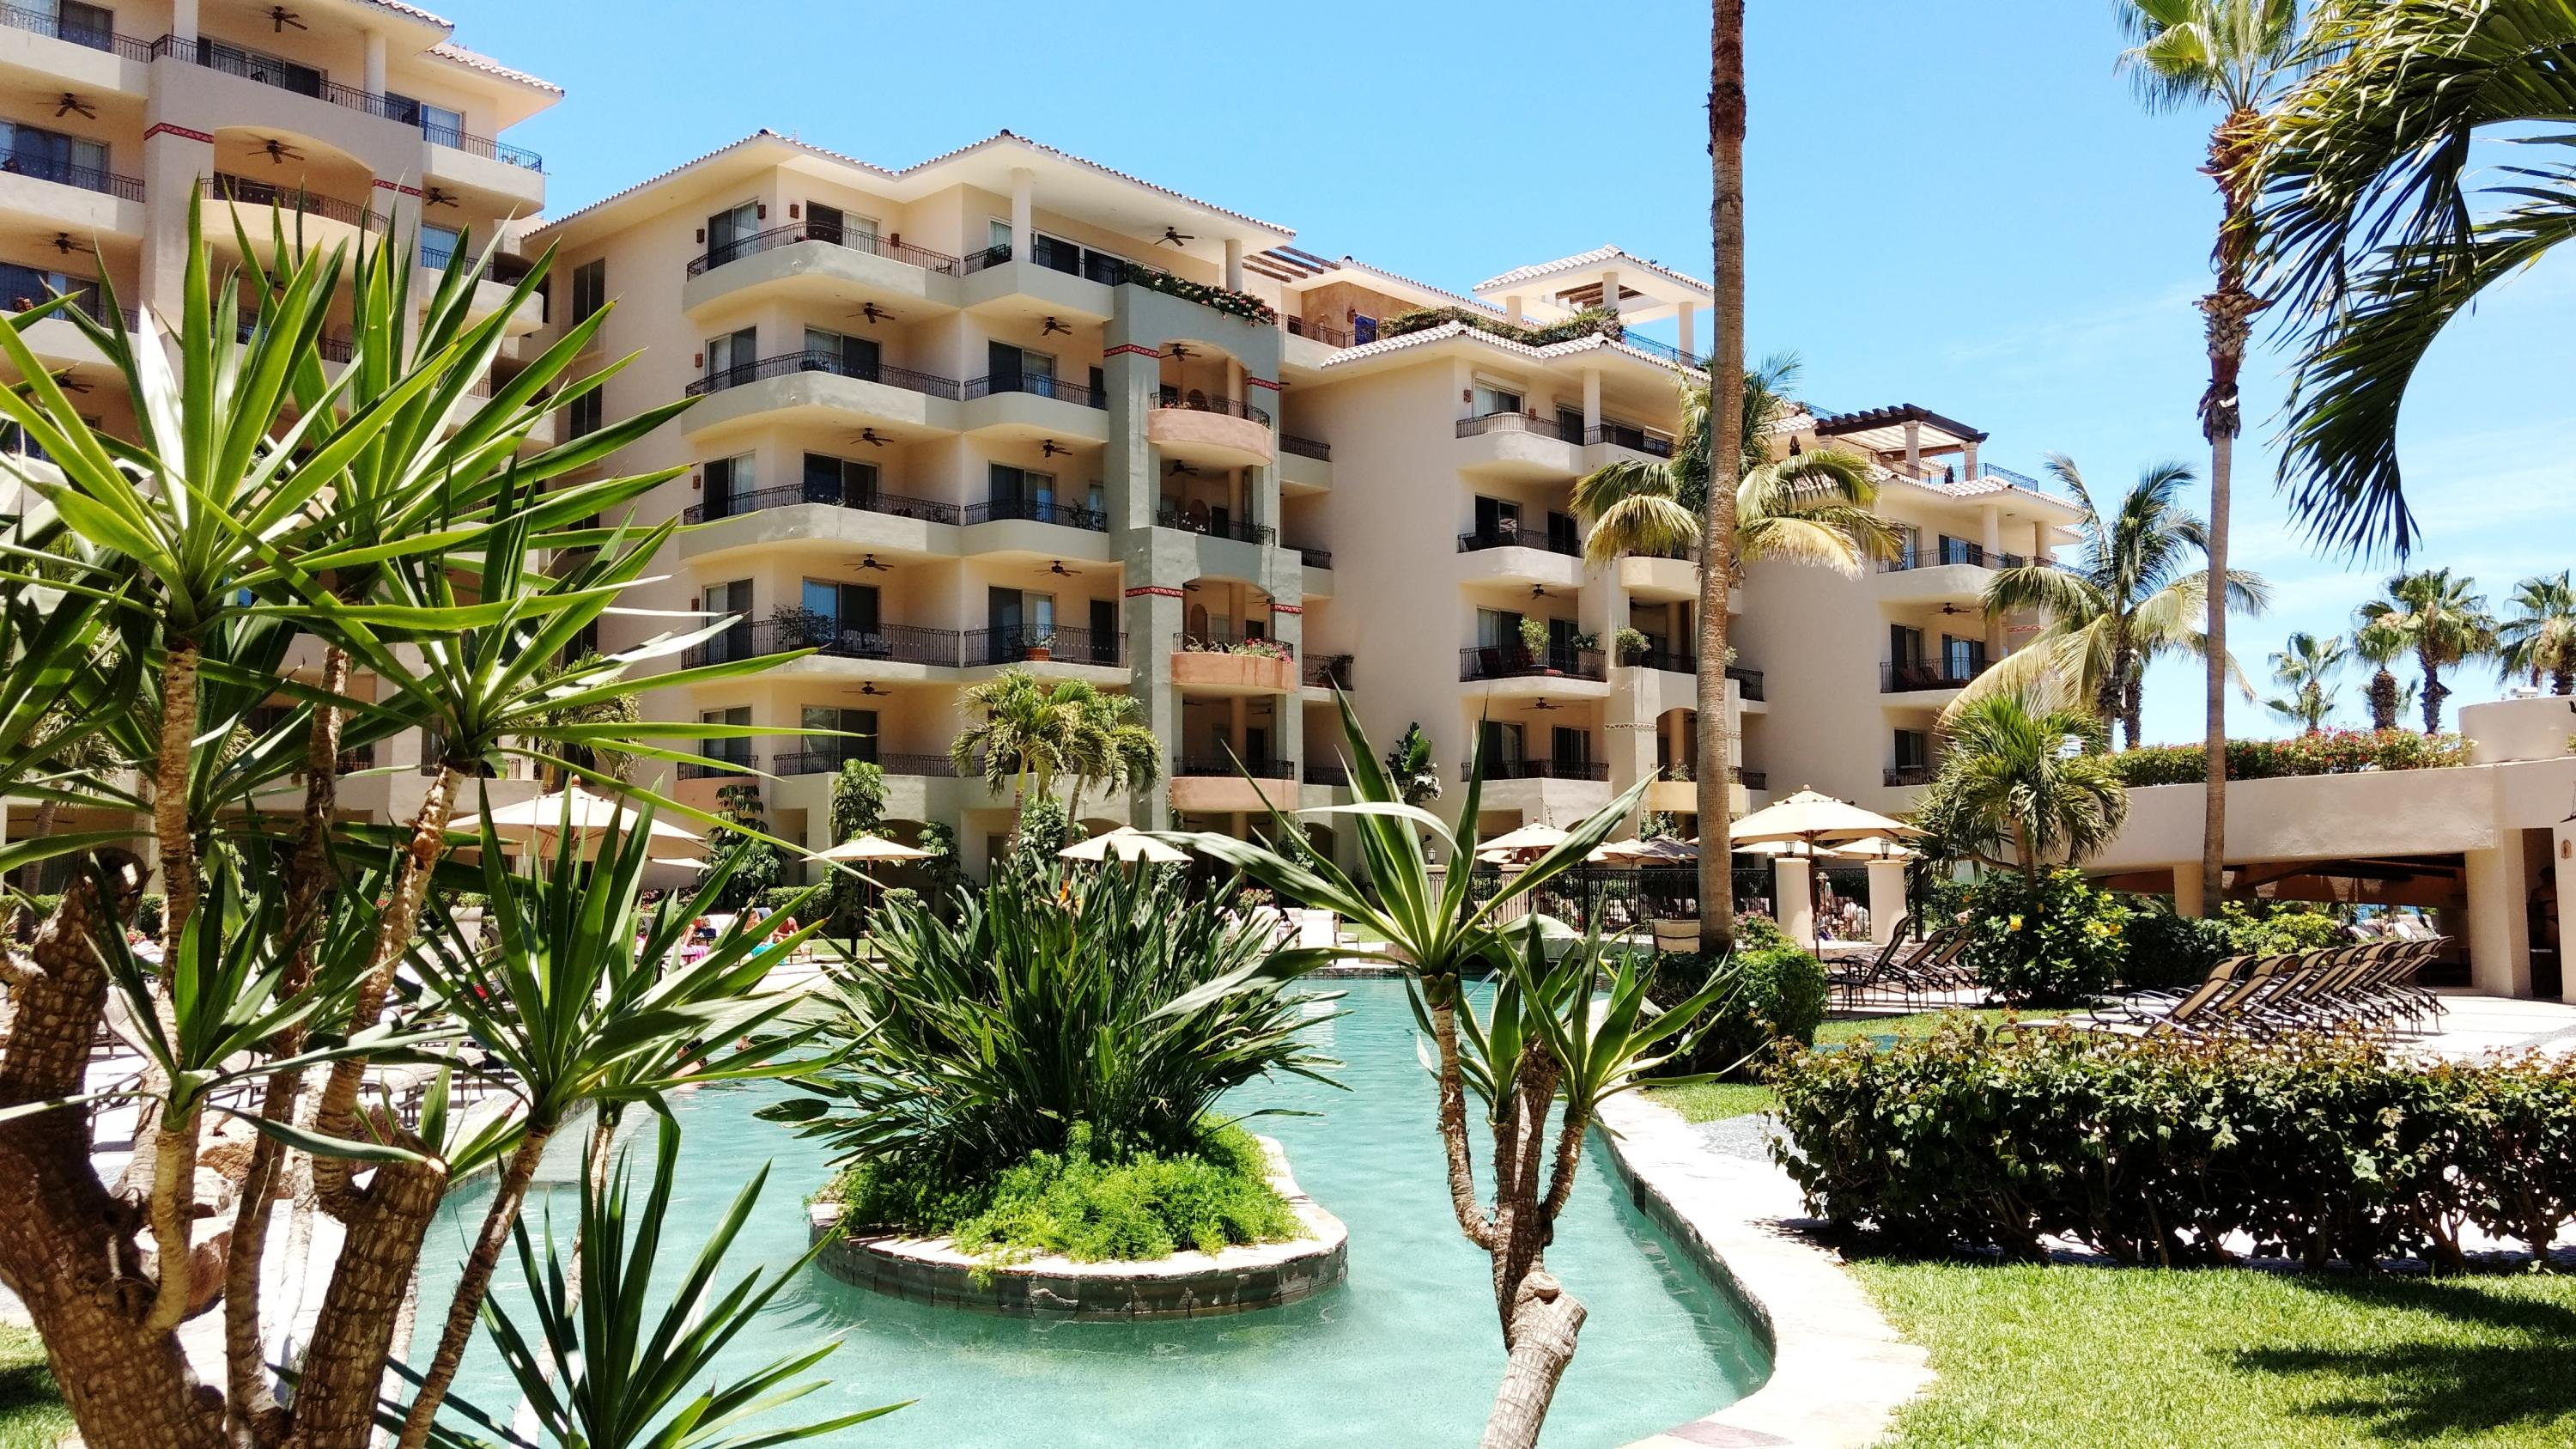 Cabo San Lucas, 2 Bedrooms Bedrooms, 6 Rooms Rooms,3 BathroomsBathrooms,Condo,For Sale,Camino Viejo a San Jose Km 0.5,17-1837